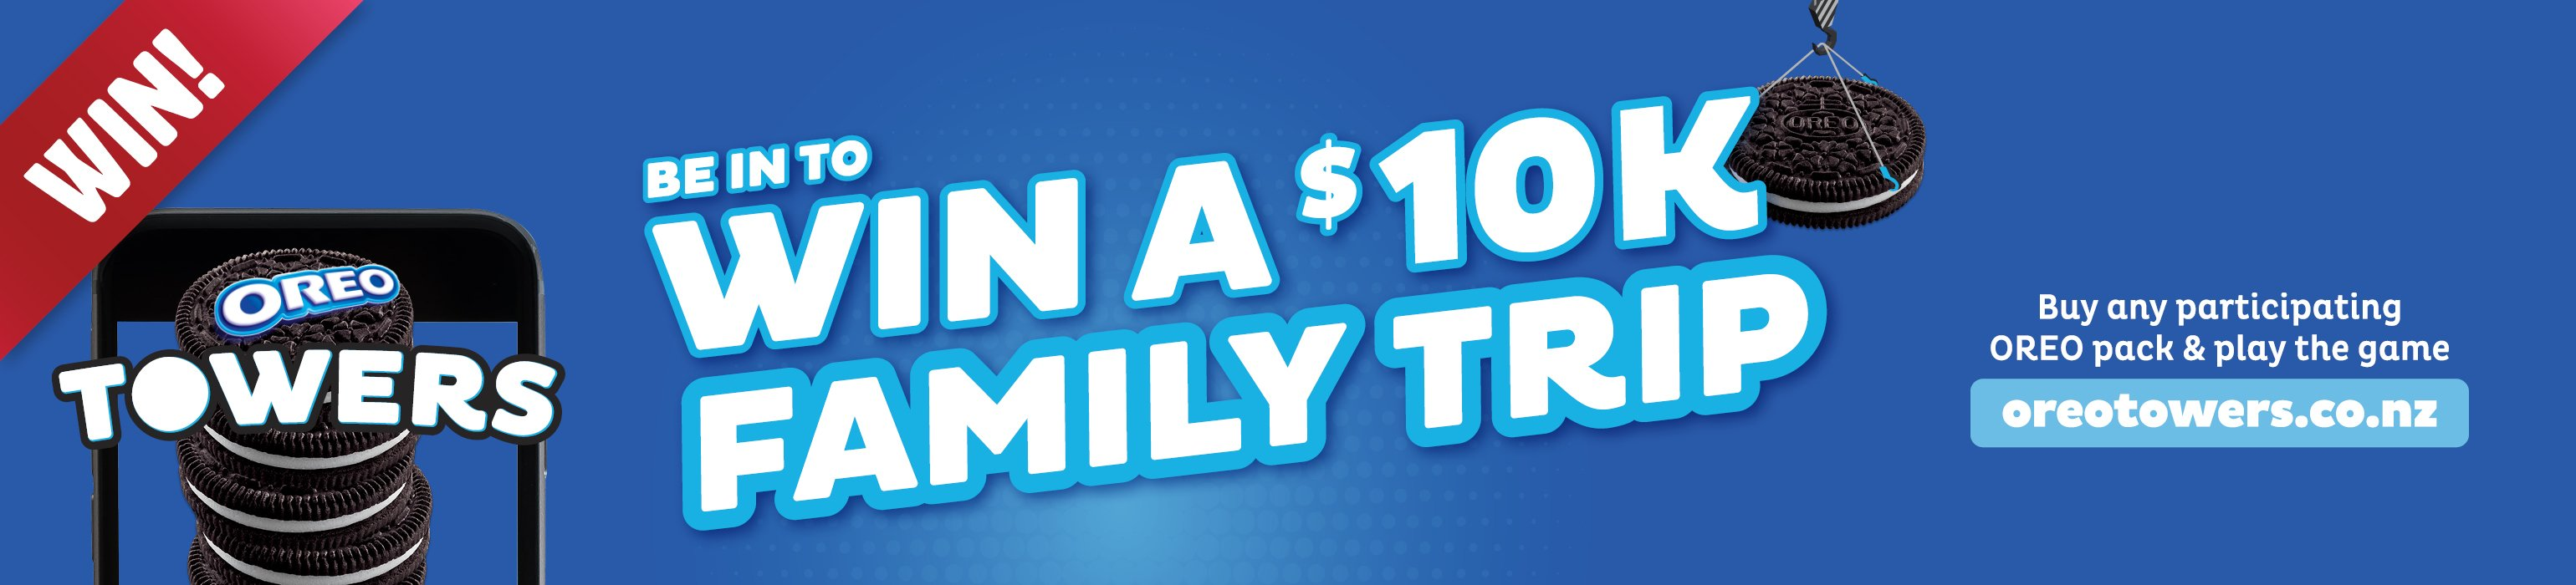 Win a family trip with Oreo